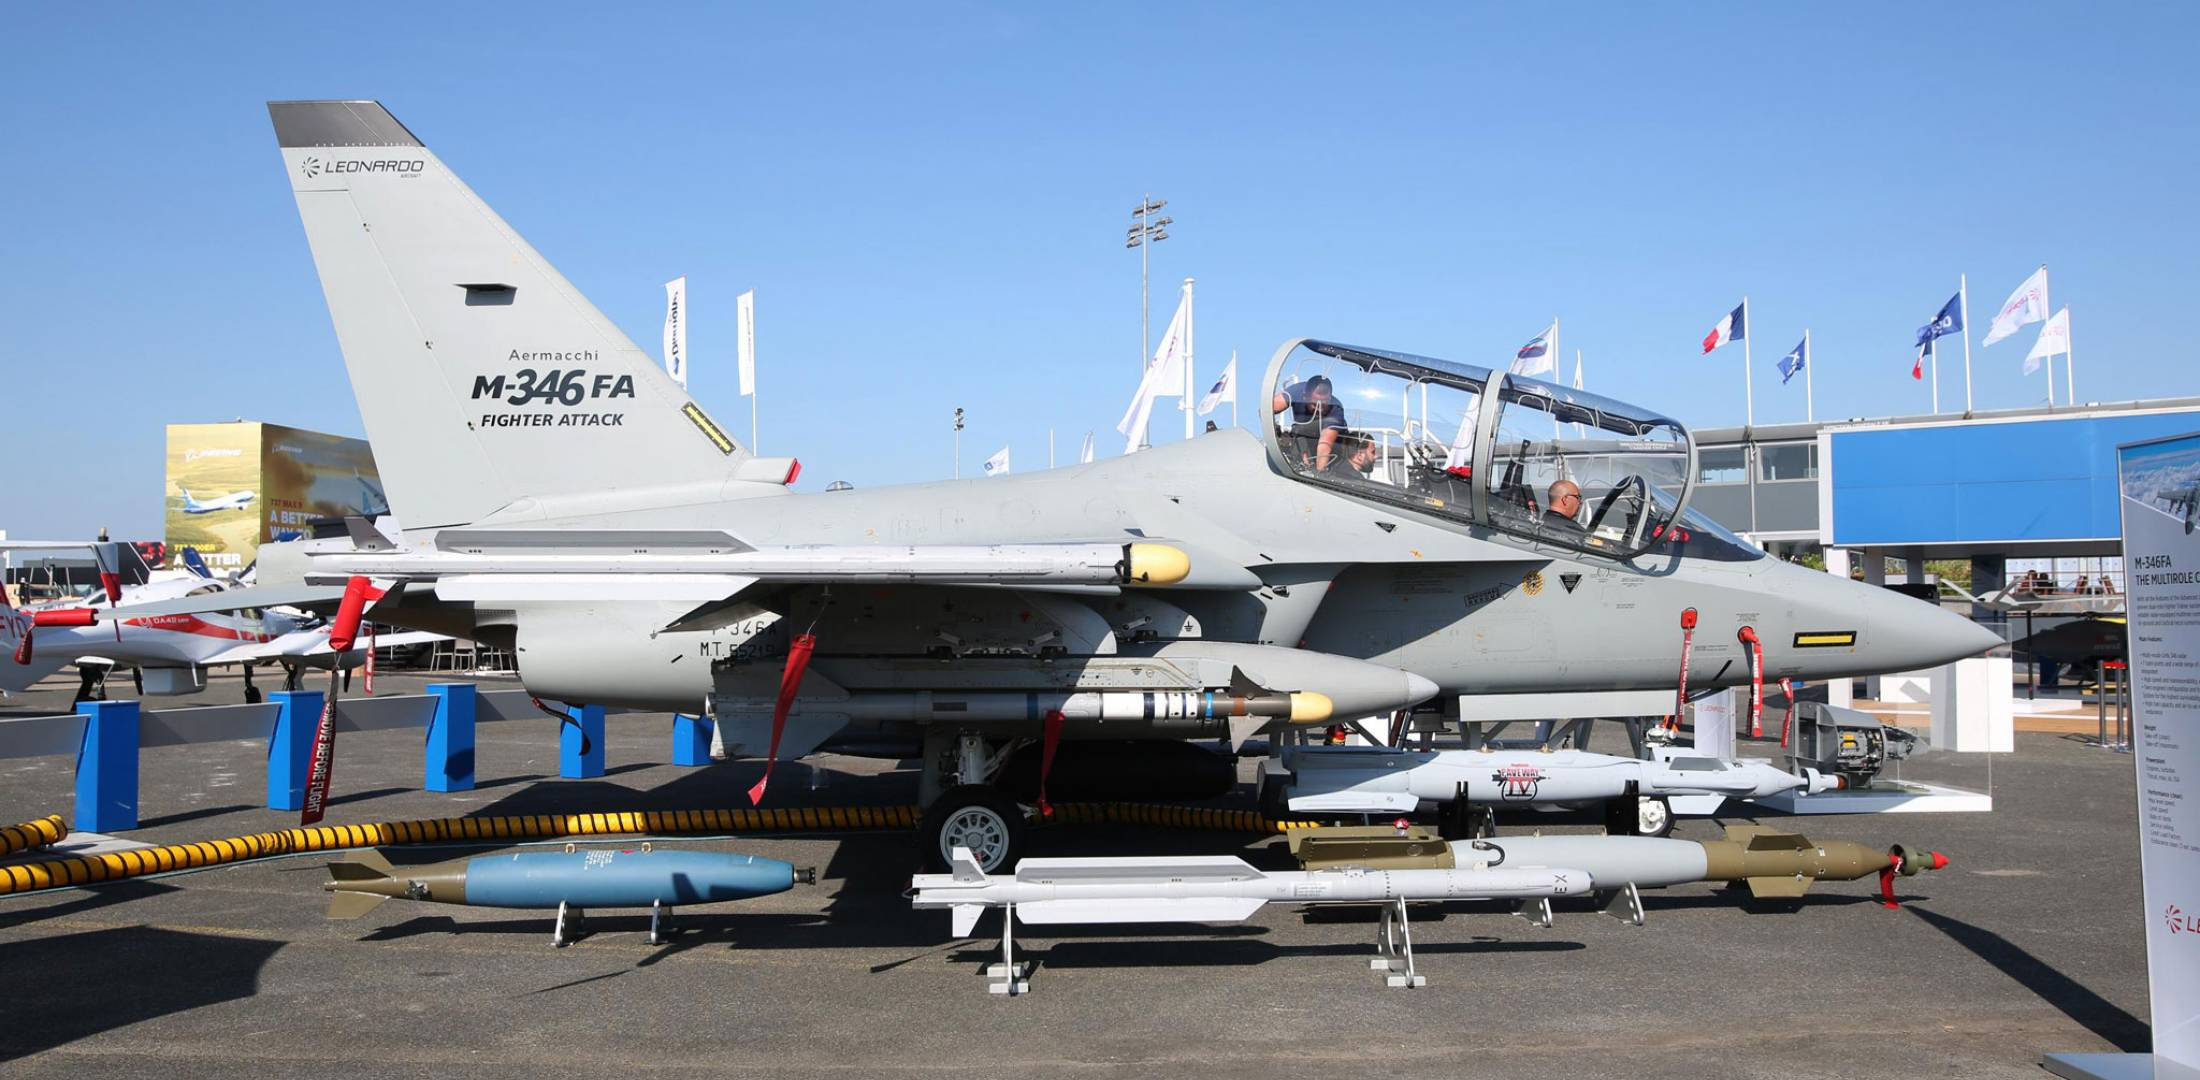 The latest version of the M-346 was shown at Paris with potential weapons.  (Photo: Leonardo)